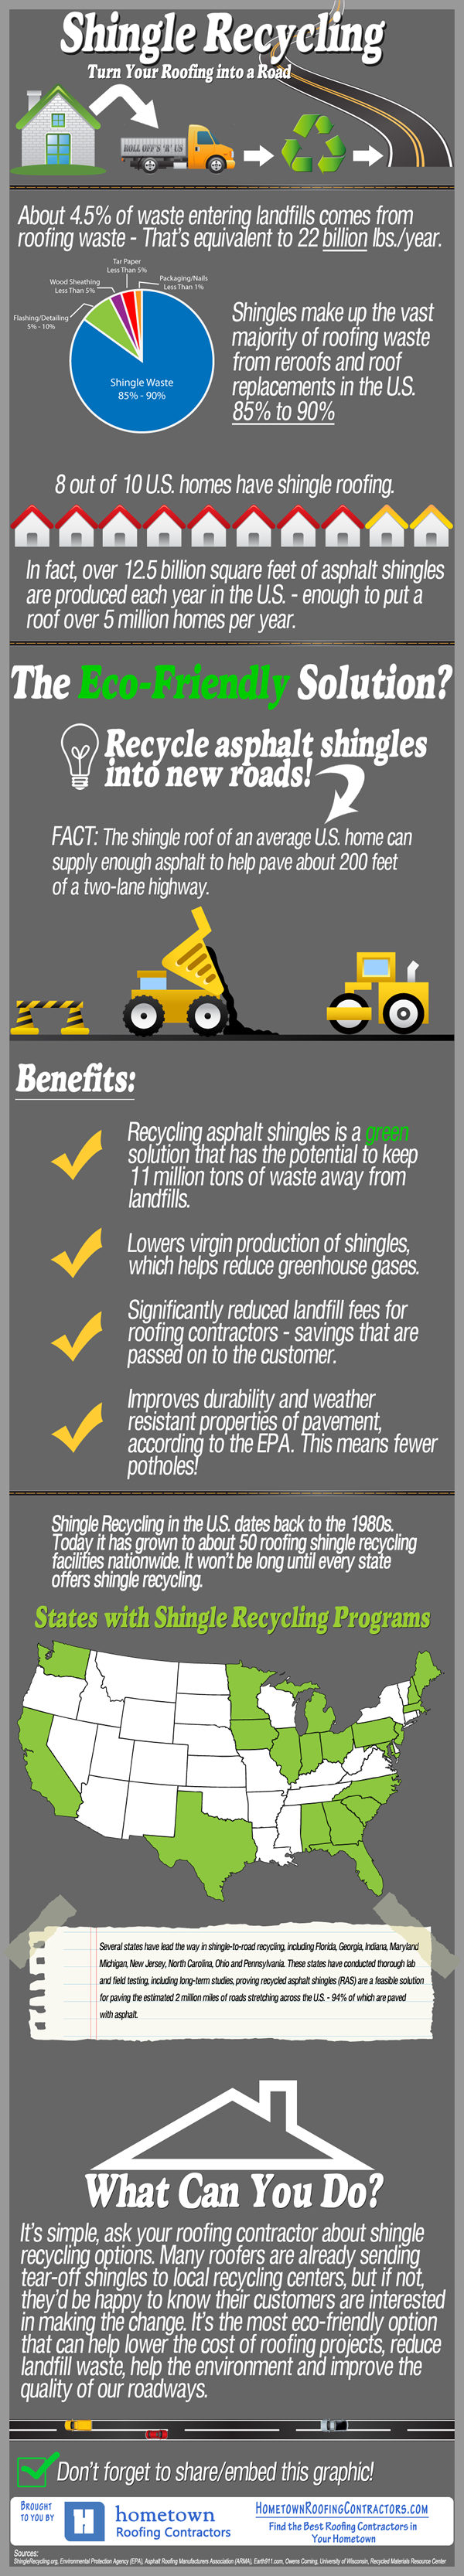 Asphalt Shingle Recycling Benefits The Environment And Your Wallet With Images Recycling Facts Shingling Roofing